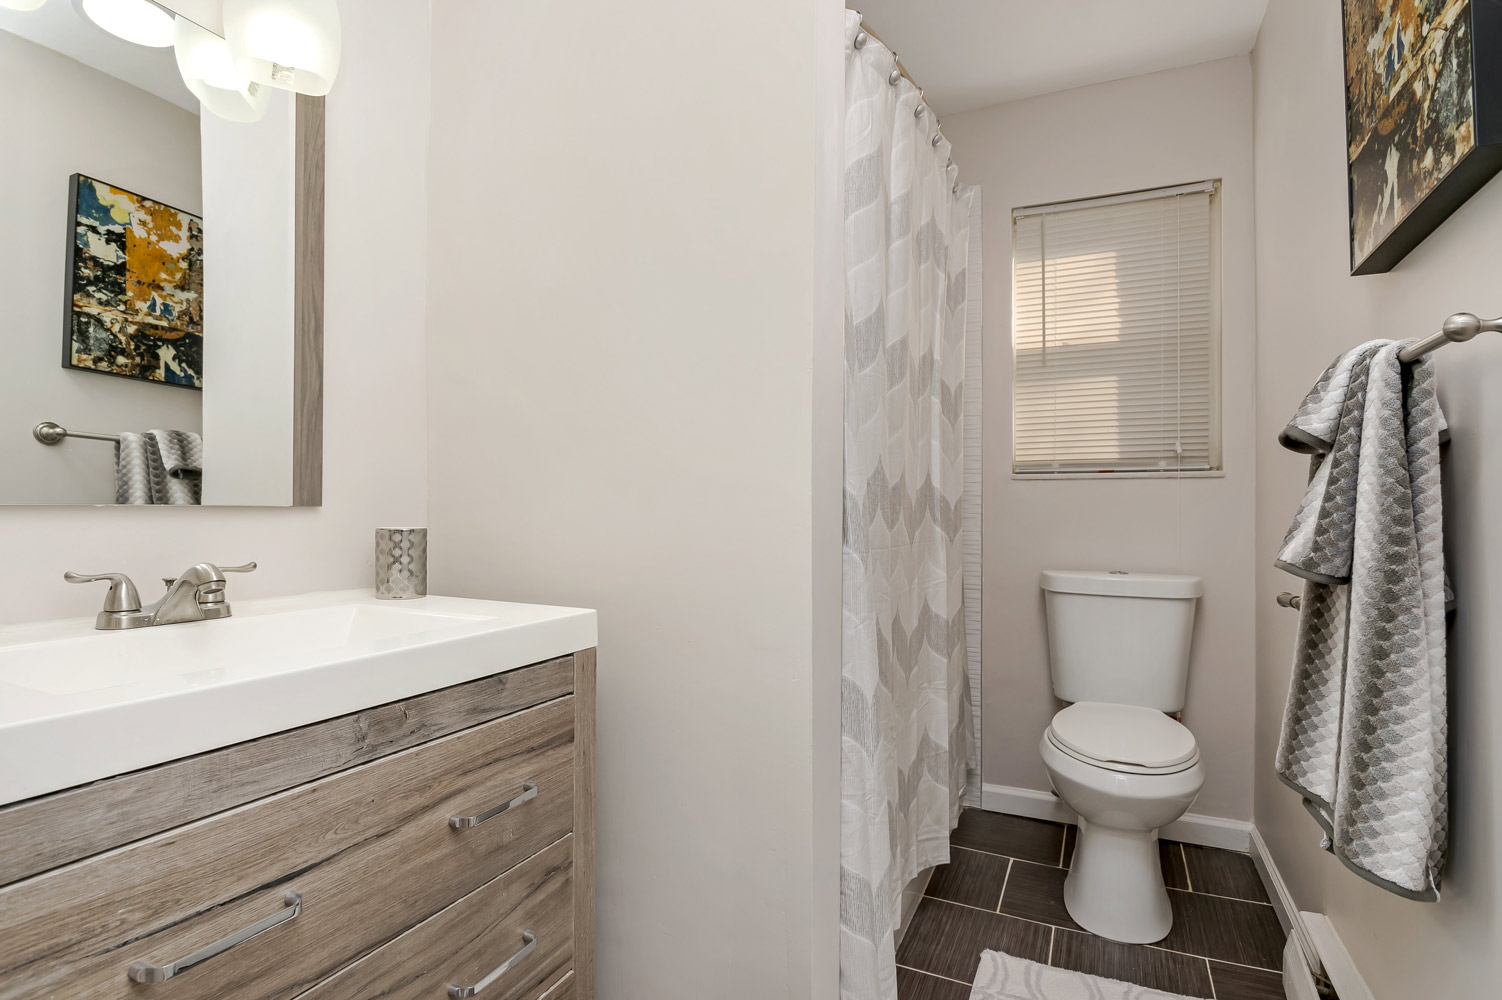 Single Vanity at Grandview Gardens Apartments in Edison, New Jersey